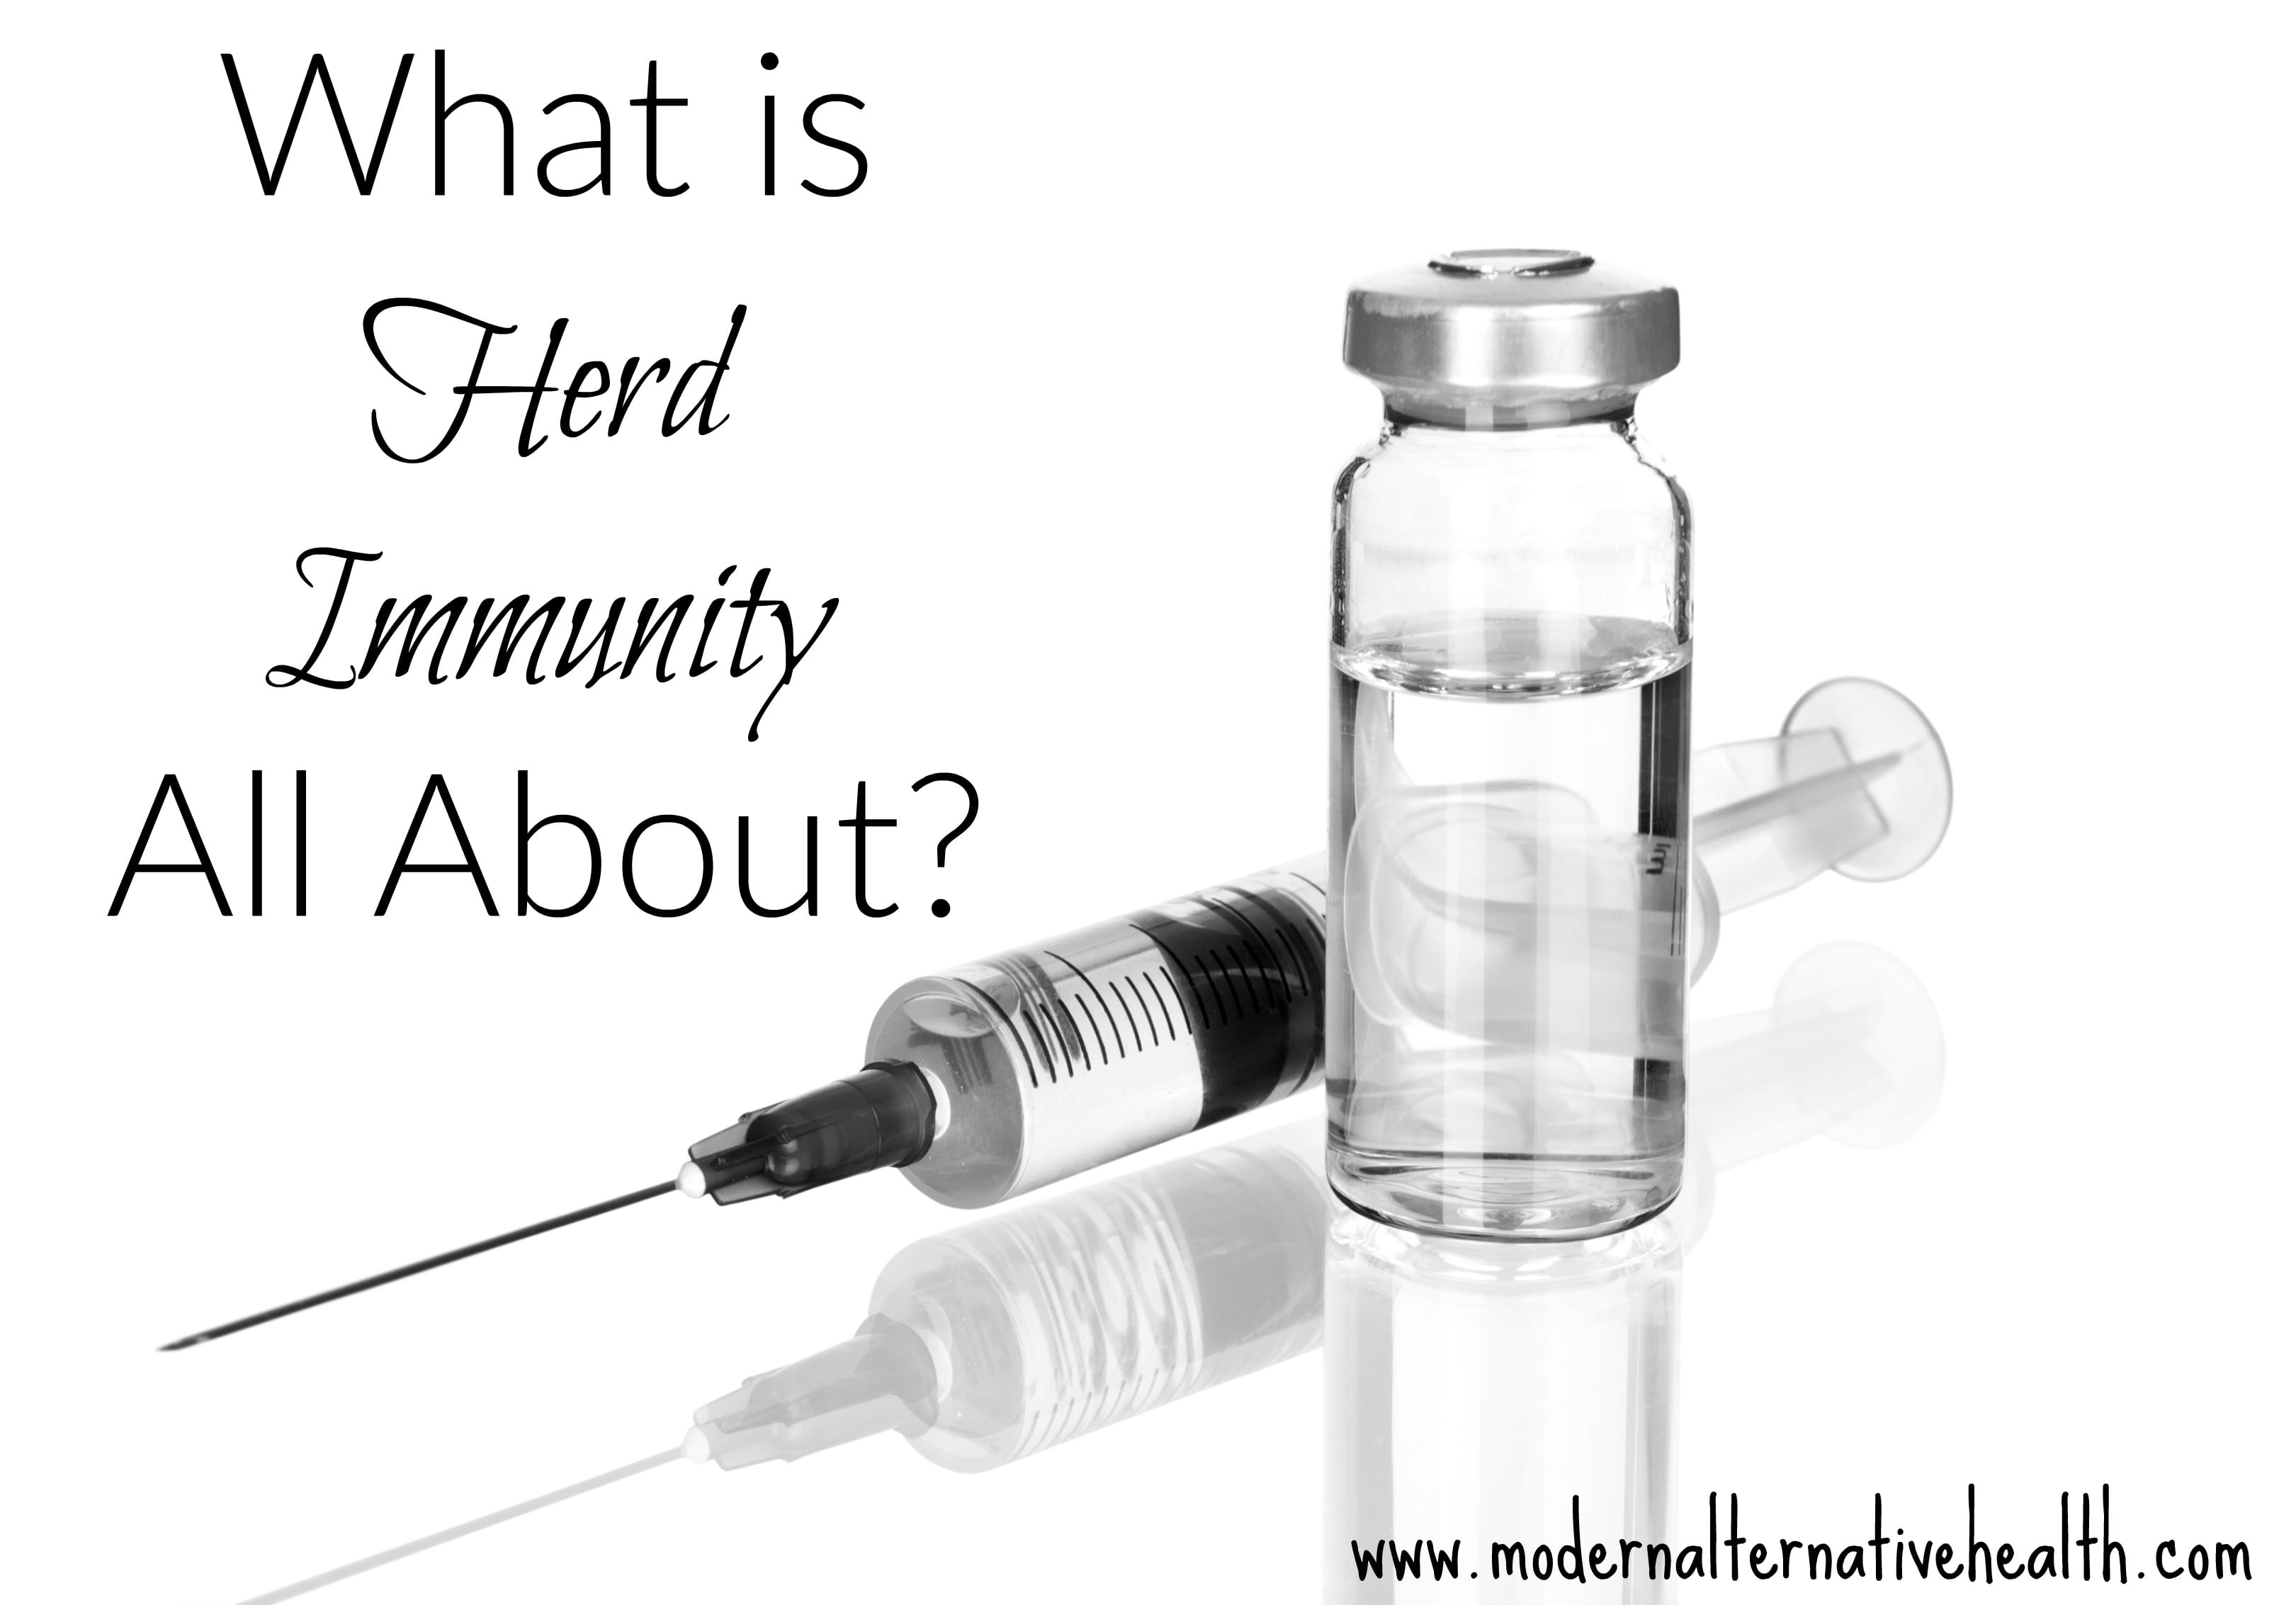 What is Herd Immunity All About